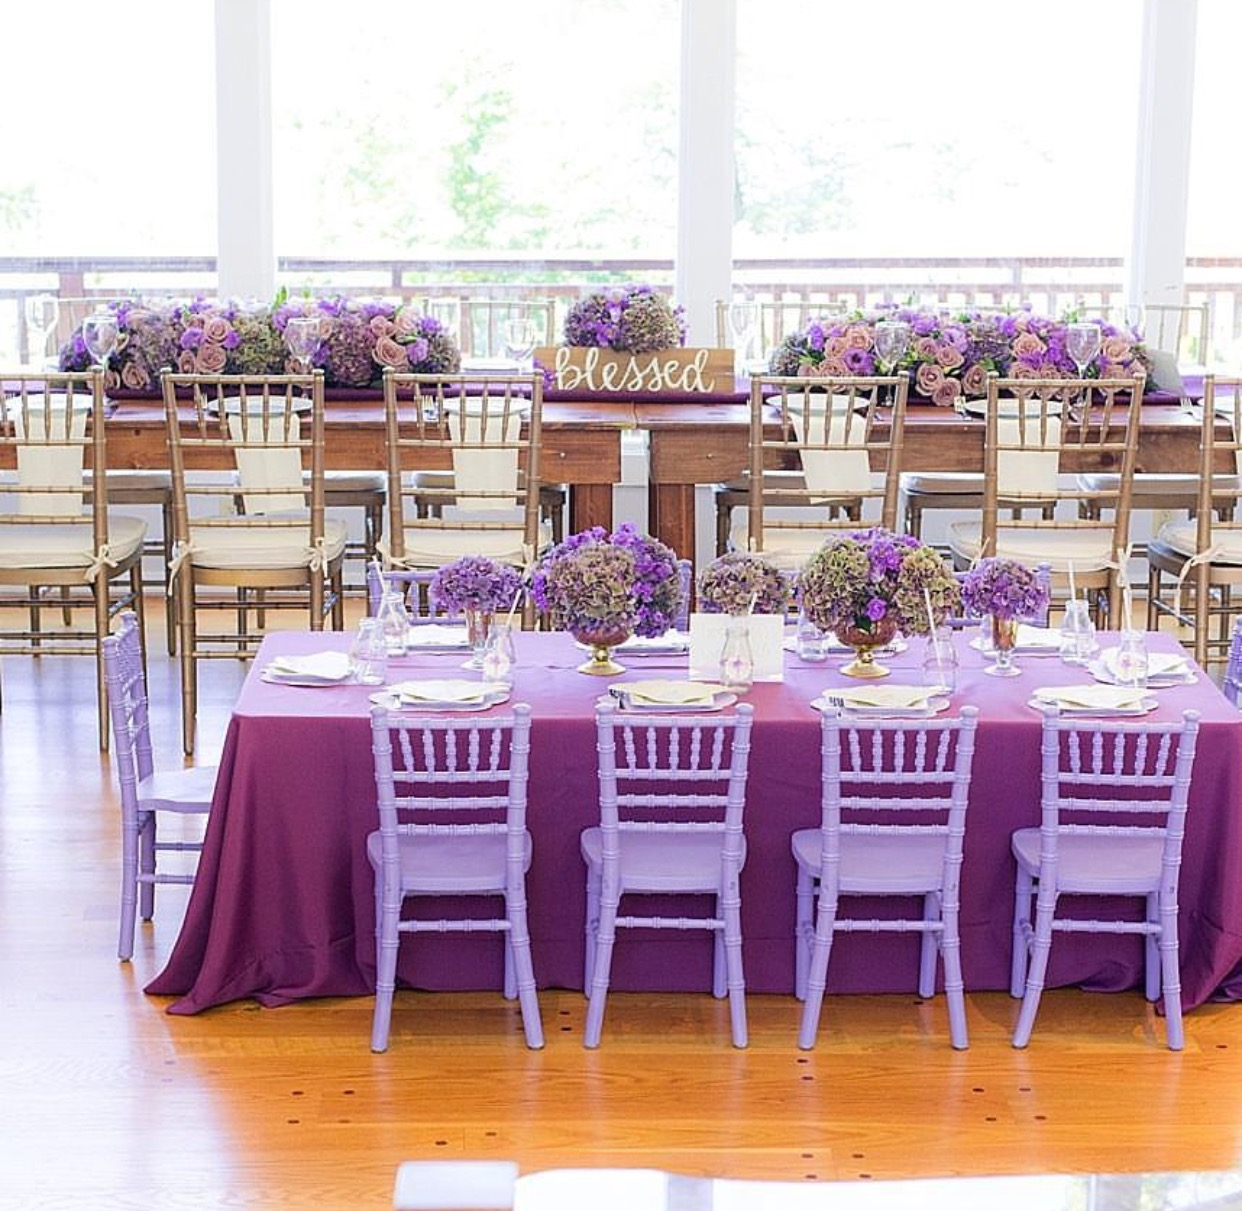 We sprayed our chairs a lavender color for this Baptism.